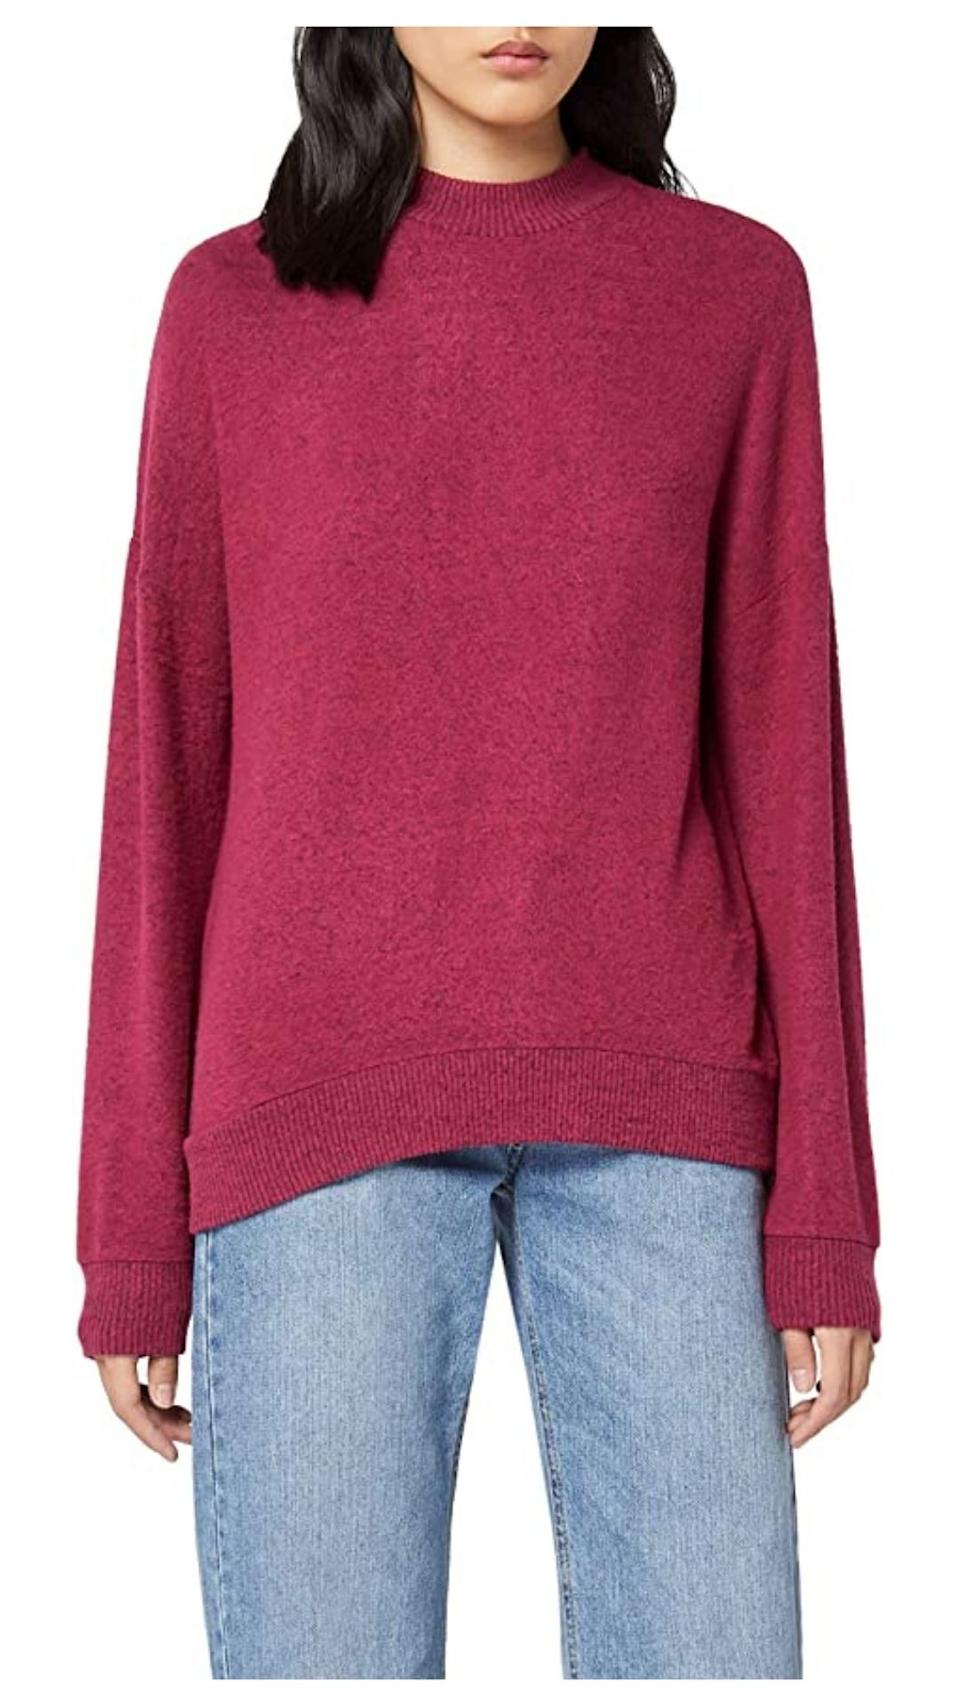 Find Oversized Sweater - Amazon, from $32